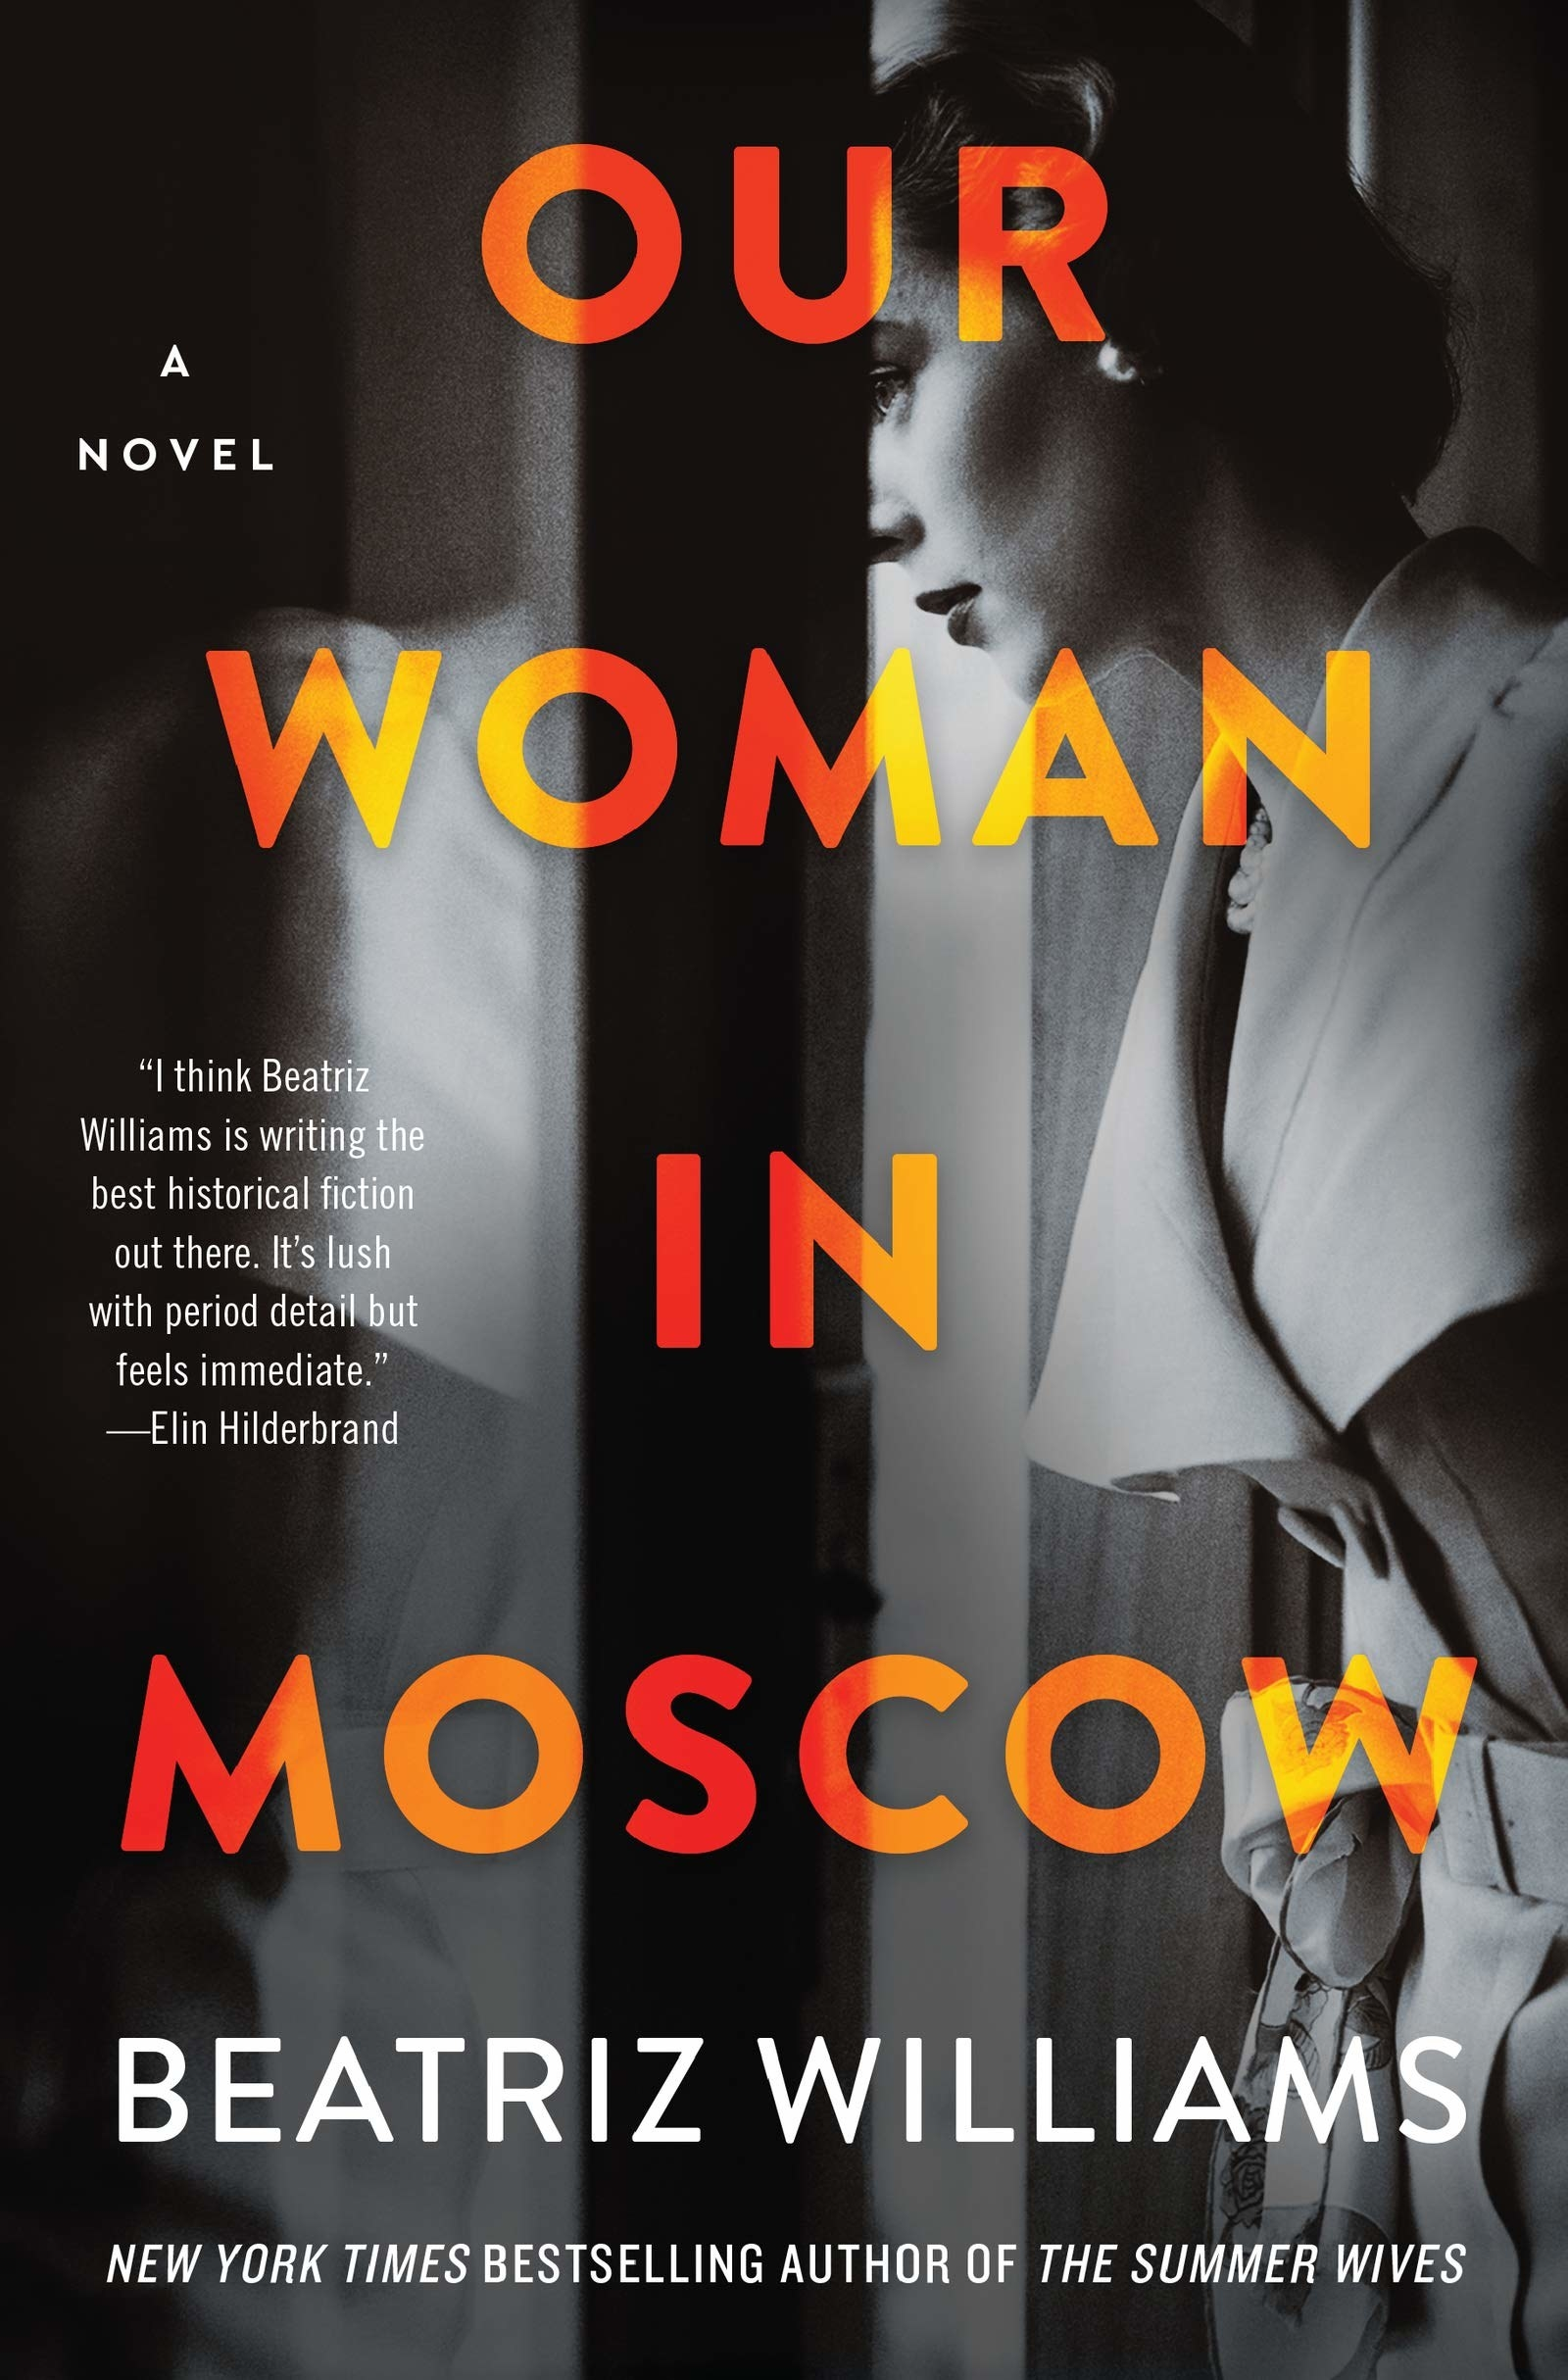 the book cover with black-and-white photo of woman looking out of window